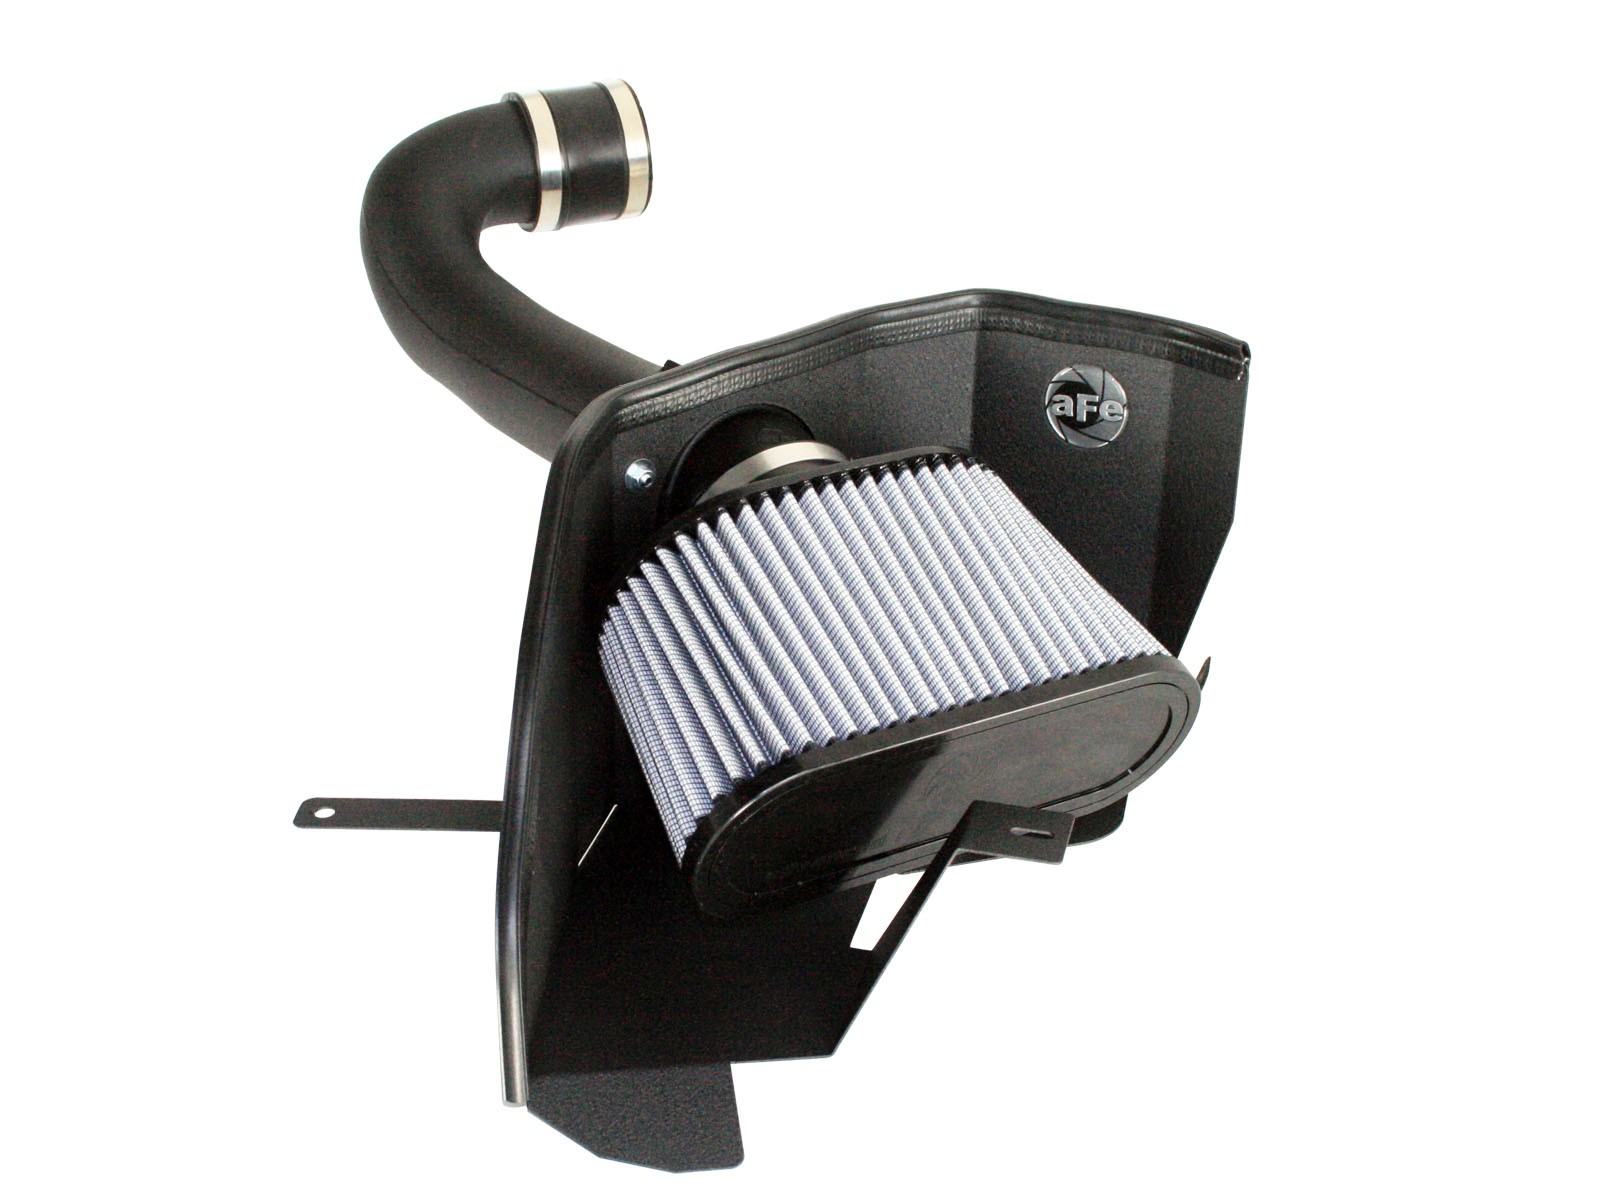 aFe POWER 51-11312 Magnum FORCE Stage-2 Pro DRY S Cold Air Intake System